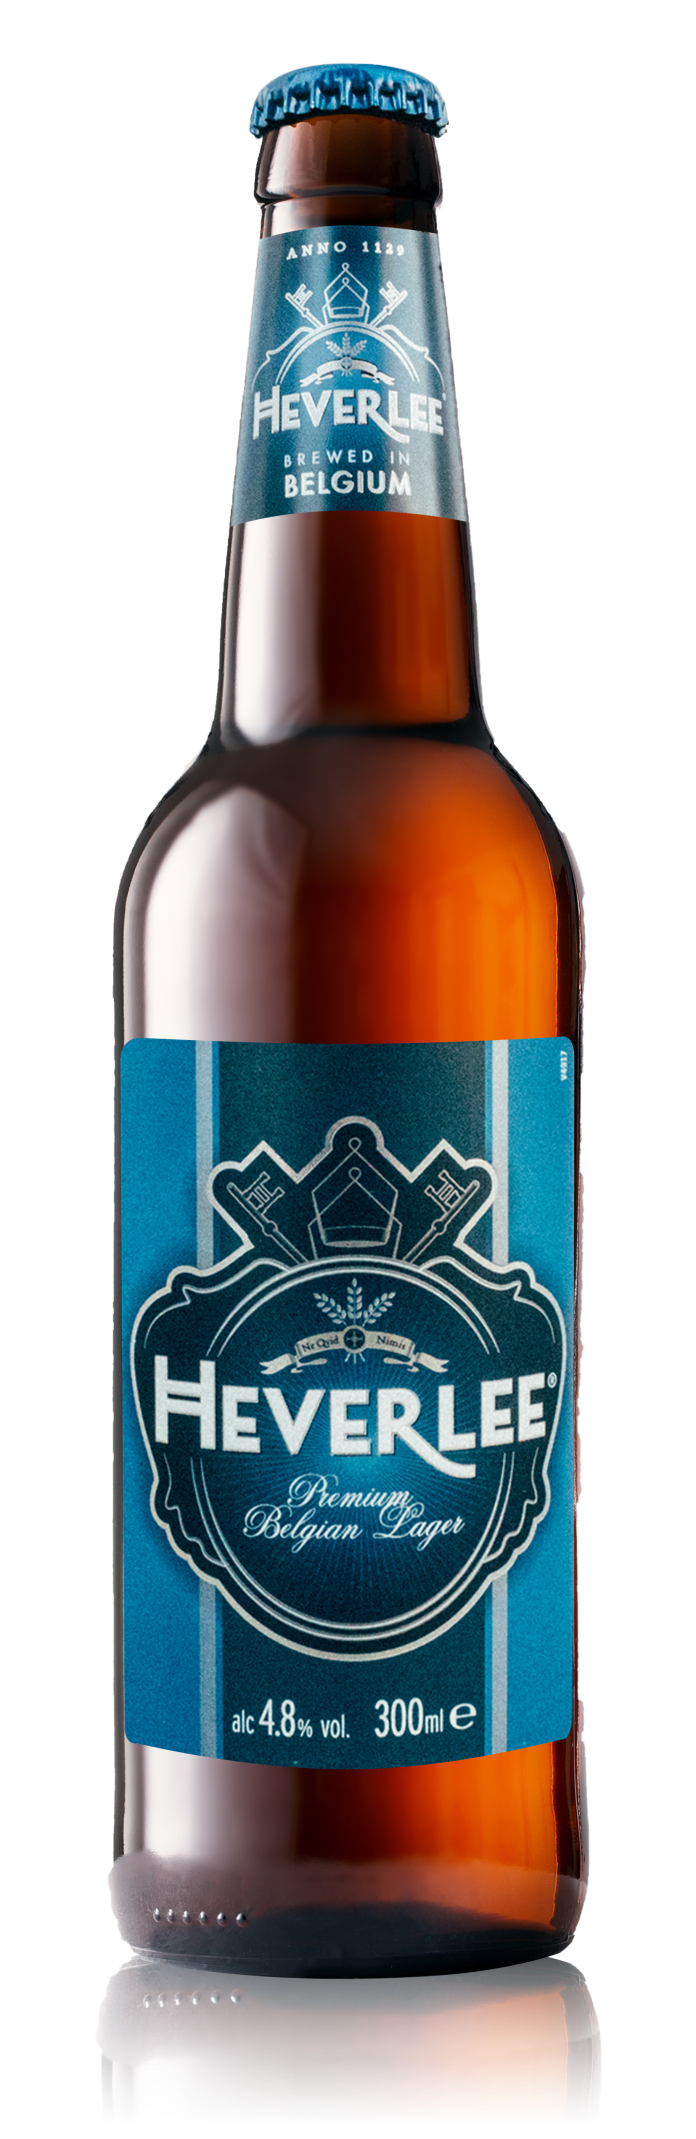 DUE TO MASSIVE ON TRADE DEMAND HEVERLEE LAUNCHES 300ML BOTTLE